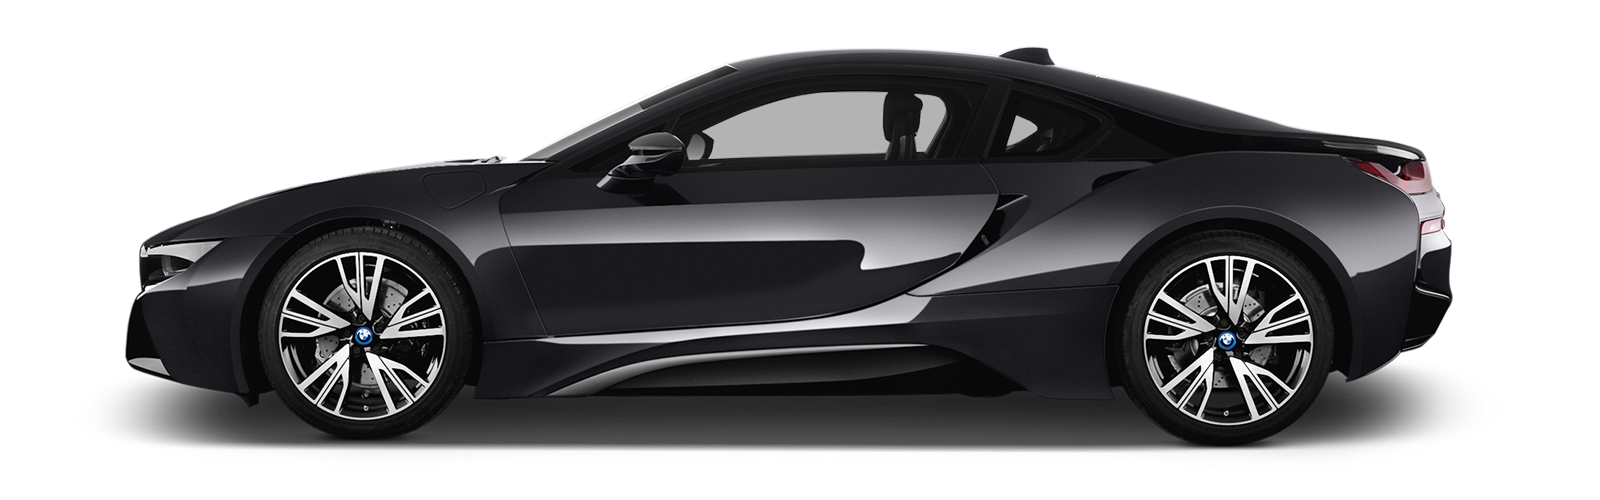 Car png images. Luxury transparent all free